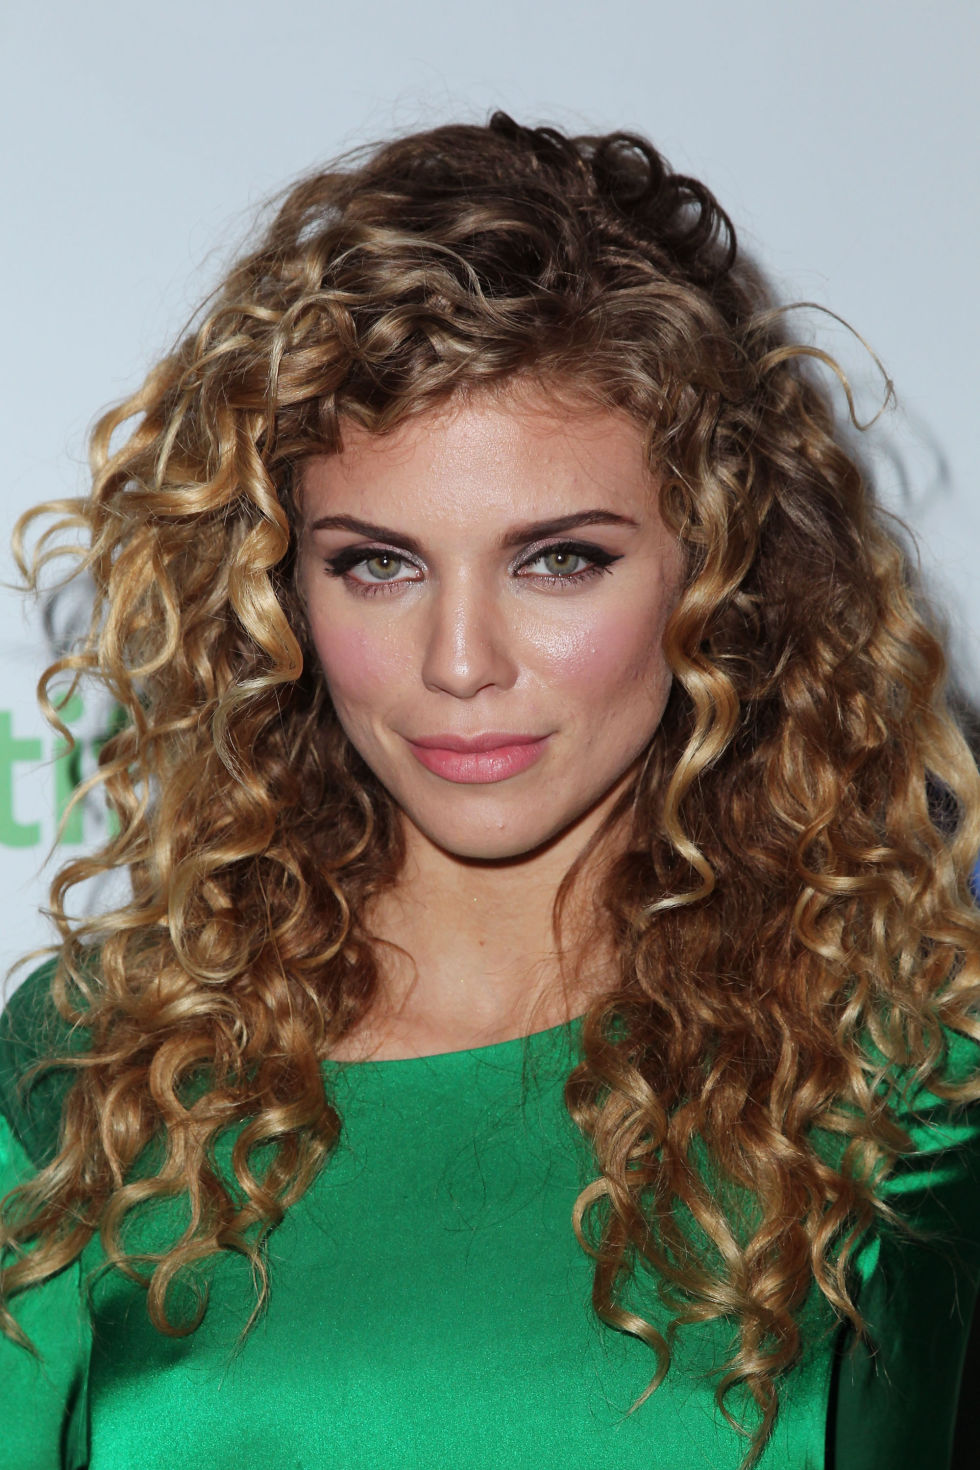 Remarkable 30 Best Curly Hairstyles Of 2017 Cute Hairstyles For Curly Hair Hairstyles For Women Draintrainus